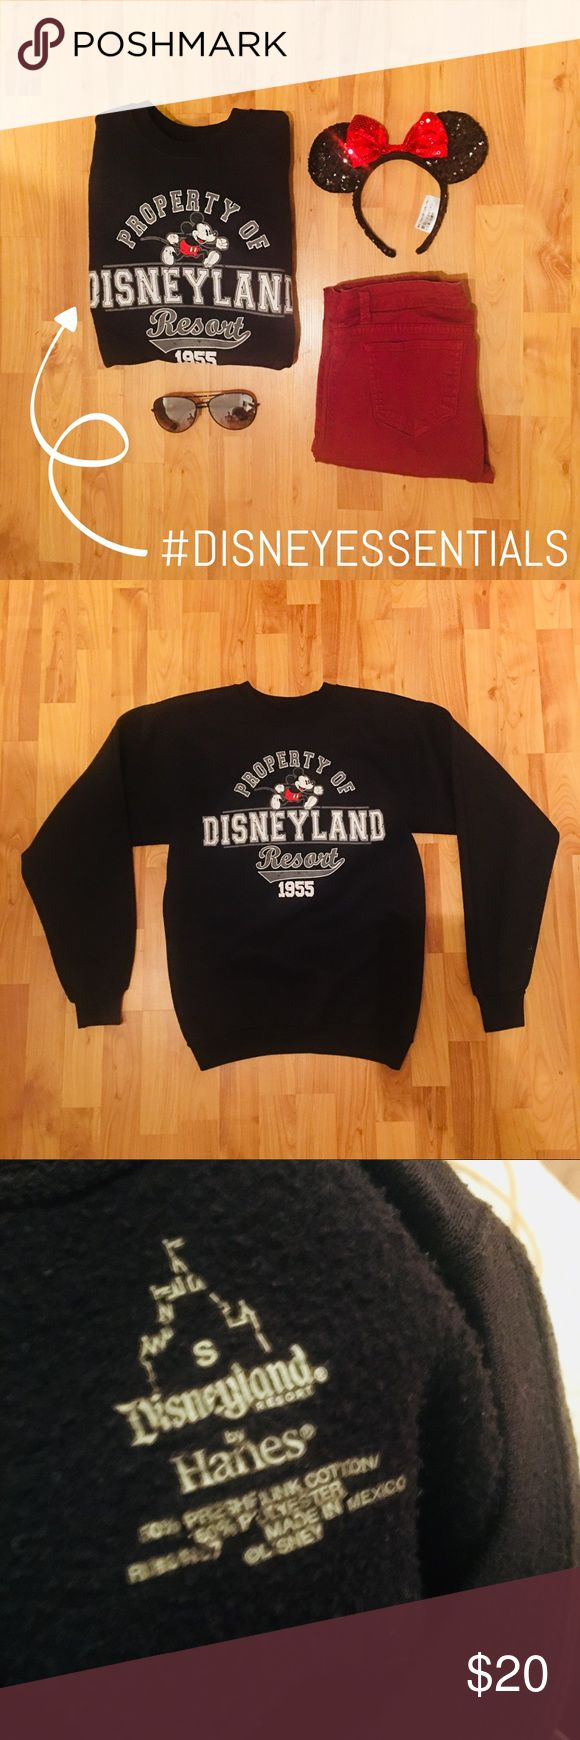 DISNEYLAND CREW NECK SWEATSHIRT Gently worn. Great condition. Bought at the Disneyland Resort in Anaheim, CA. Perfect to wear on your next adventure to the parks or keep cozy in anytime! UNISEX. Perfect for any Disney lover 💗 Disney Tops Sweatshirts & Hoodies